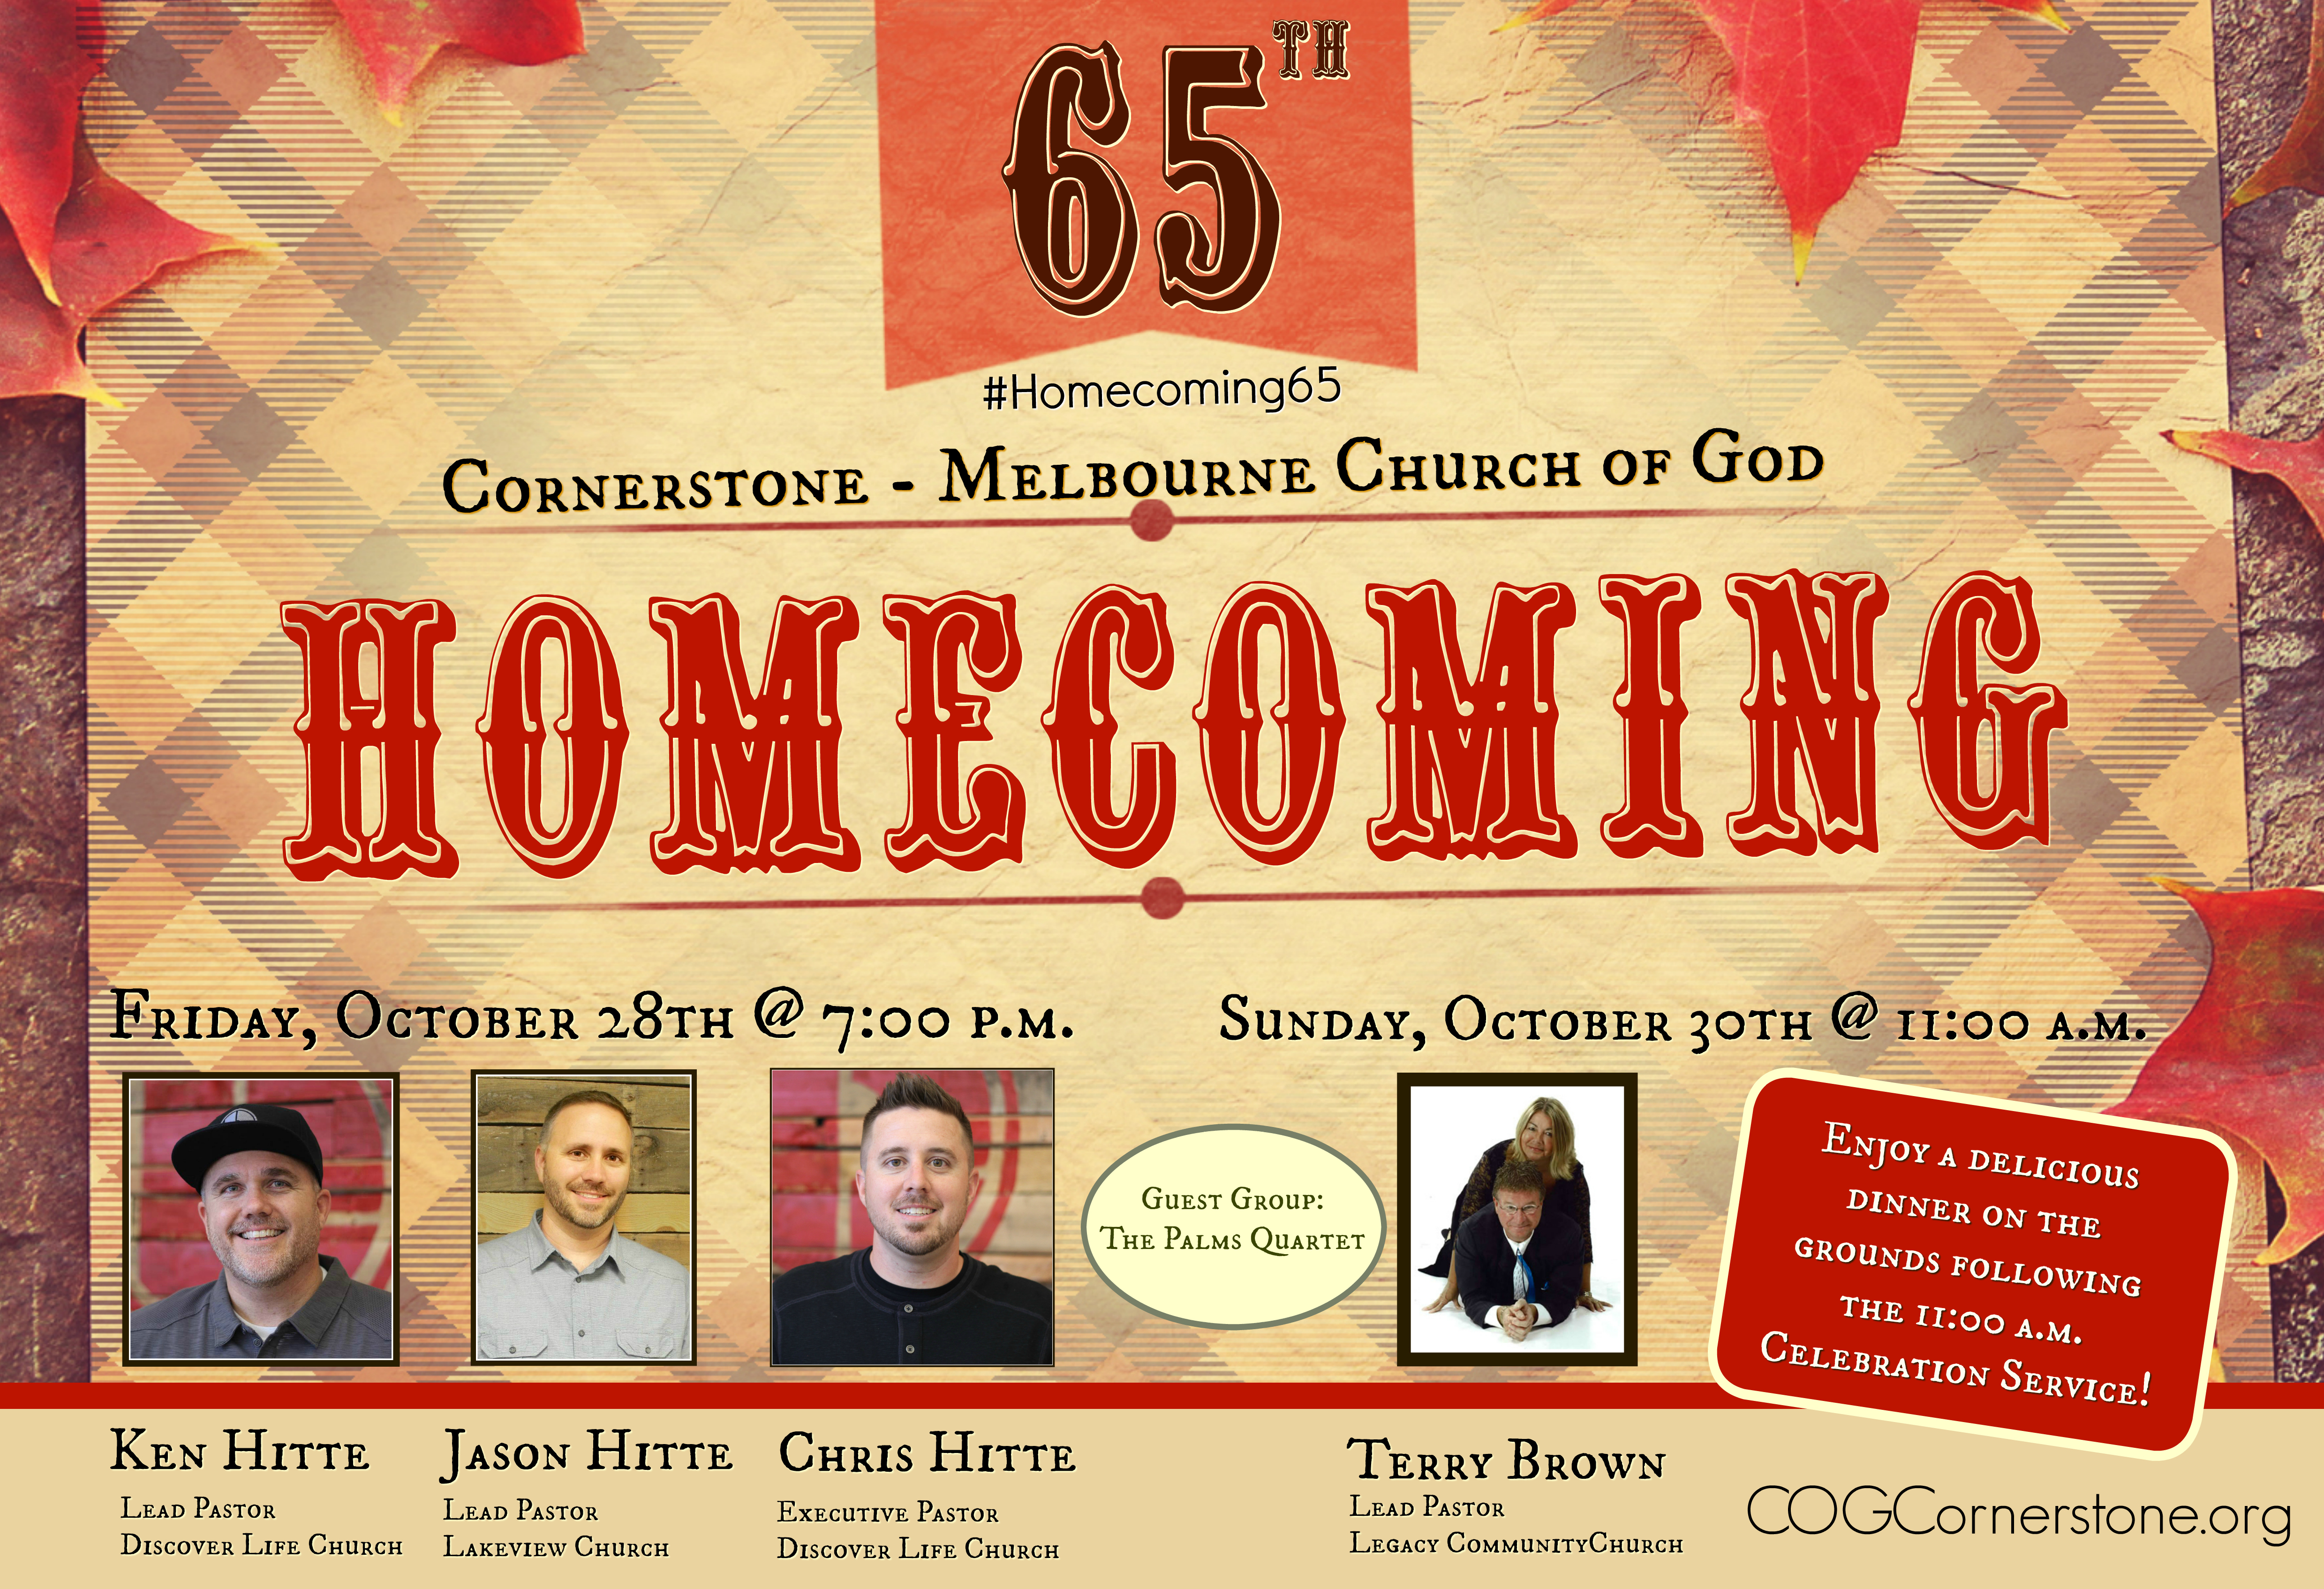 65th Homecoming Facebook Event